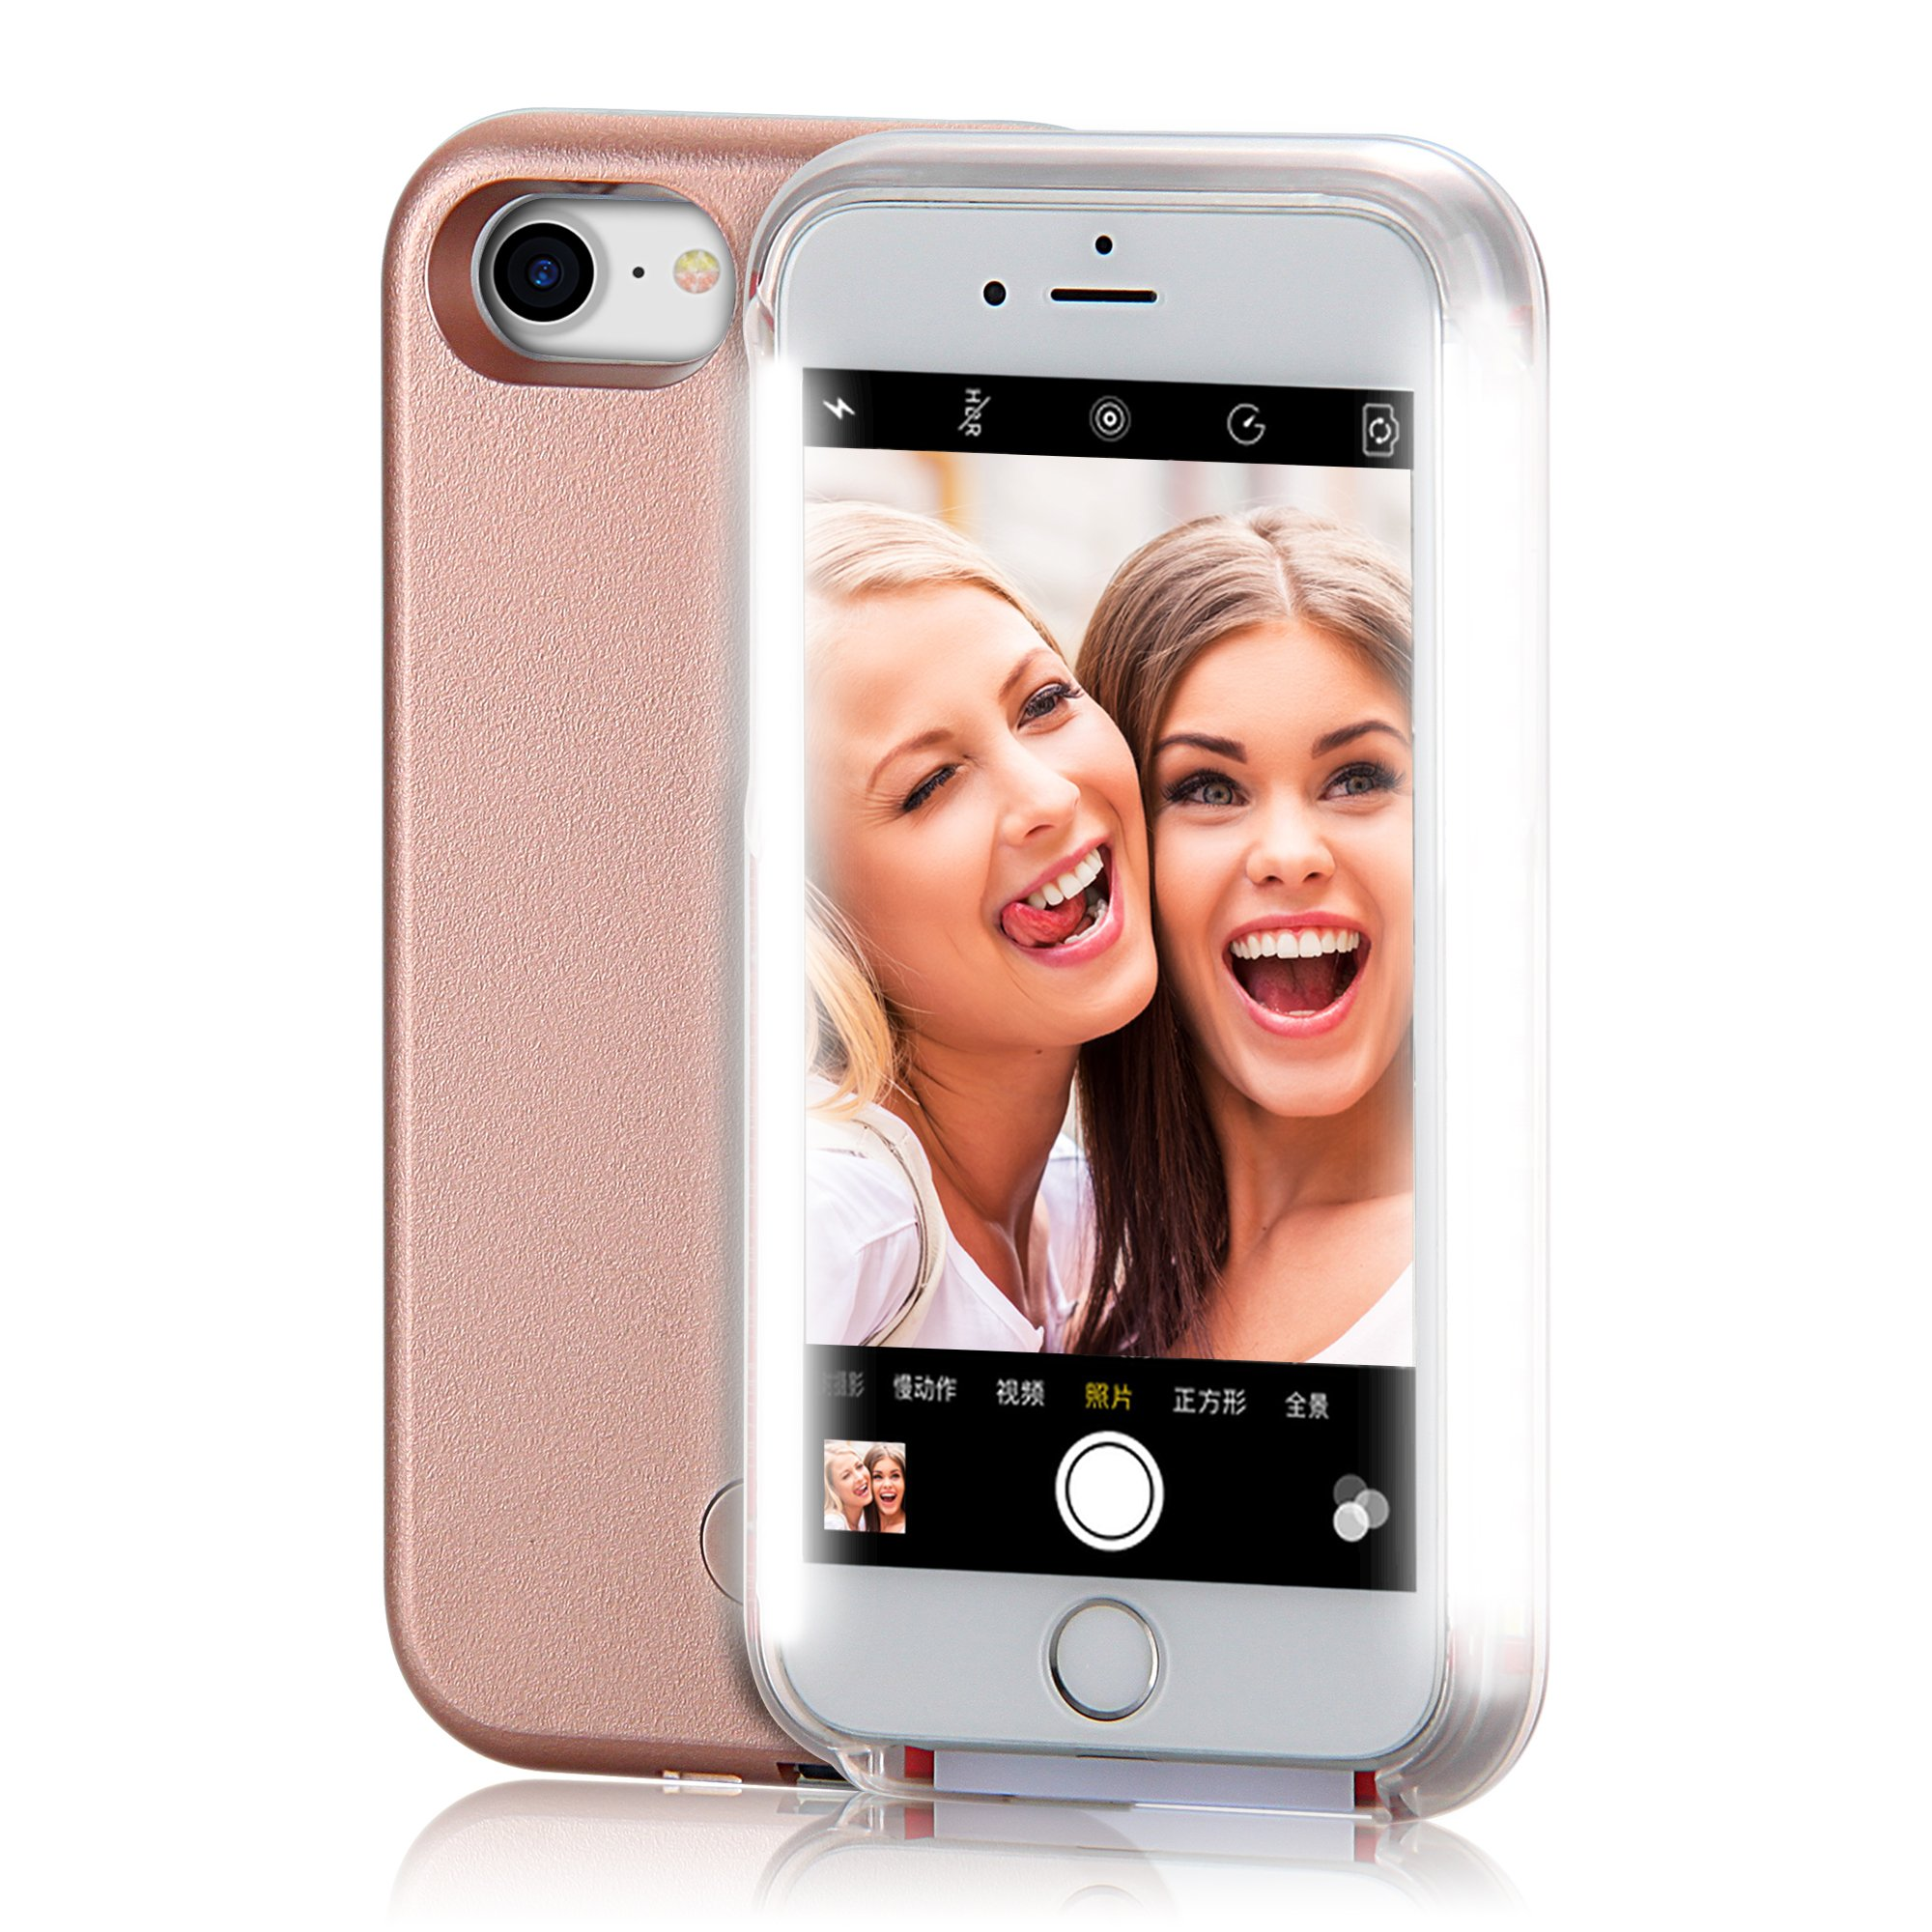 iPhone 6 Case, COSLIGHT LED Light Up Selfie Phone Case Luminous Protective Cover for Apple iPhone 6 6s (4.7'') - Rose Gold